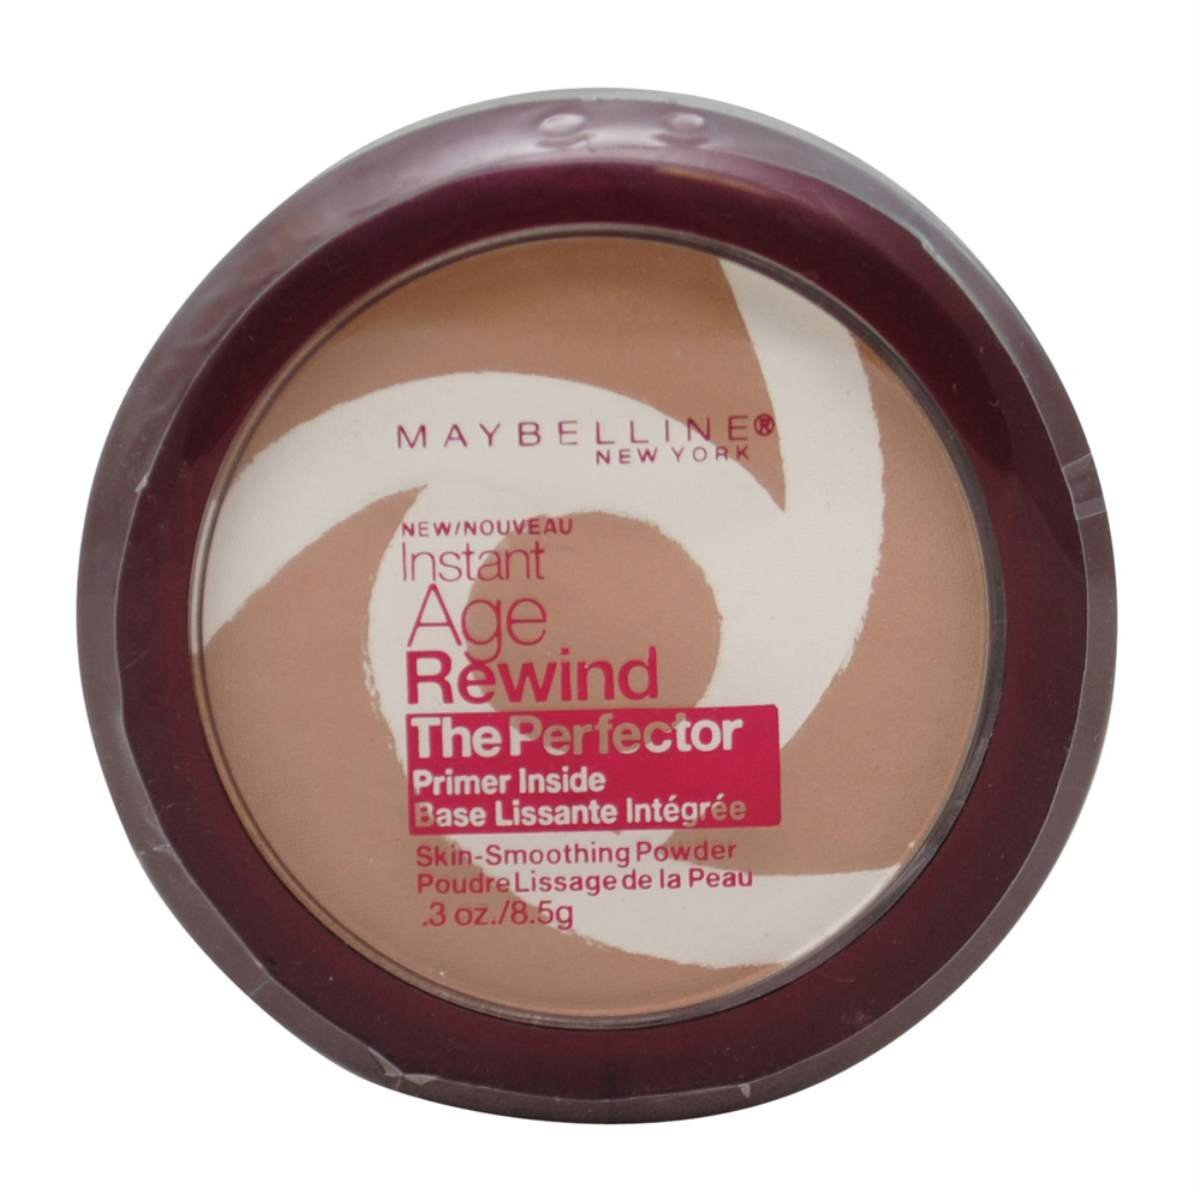 Maybelline New York Instant Age Rewind The Perfector Powder, Medium/Deep, 0.3 Ounce (Pack of 2)